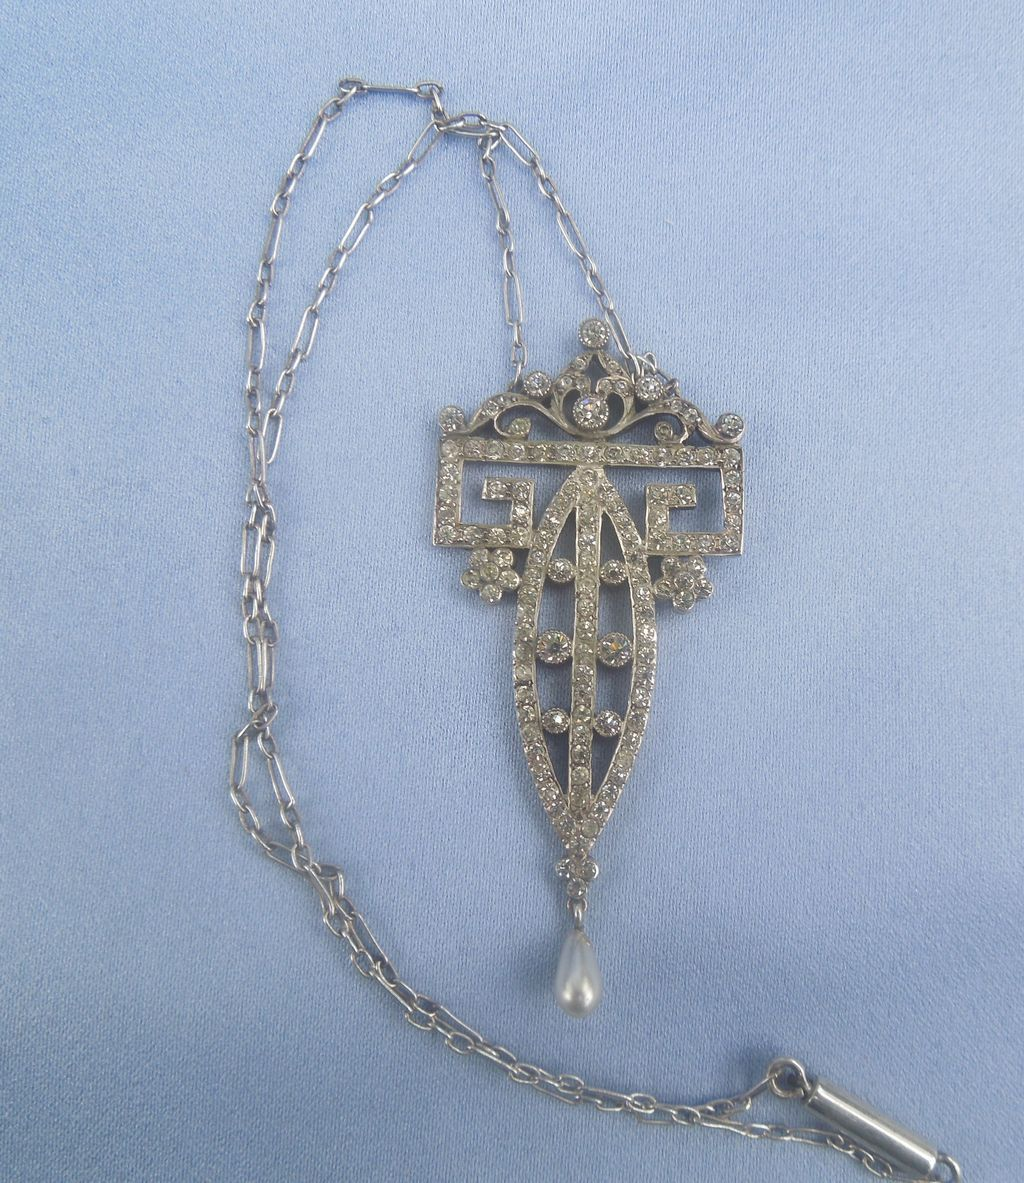 Silver and Paste Pendant With Chain, Edwardian